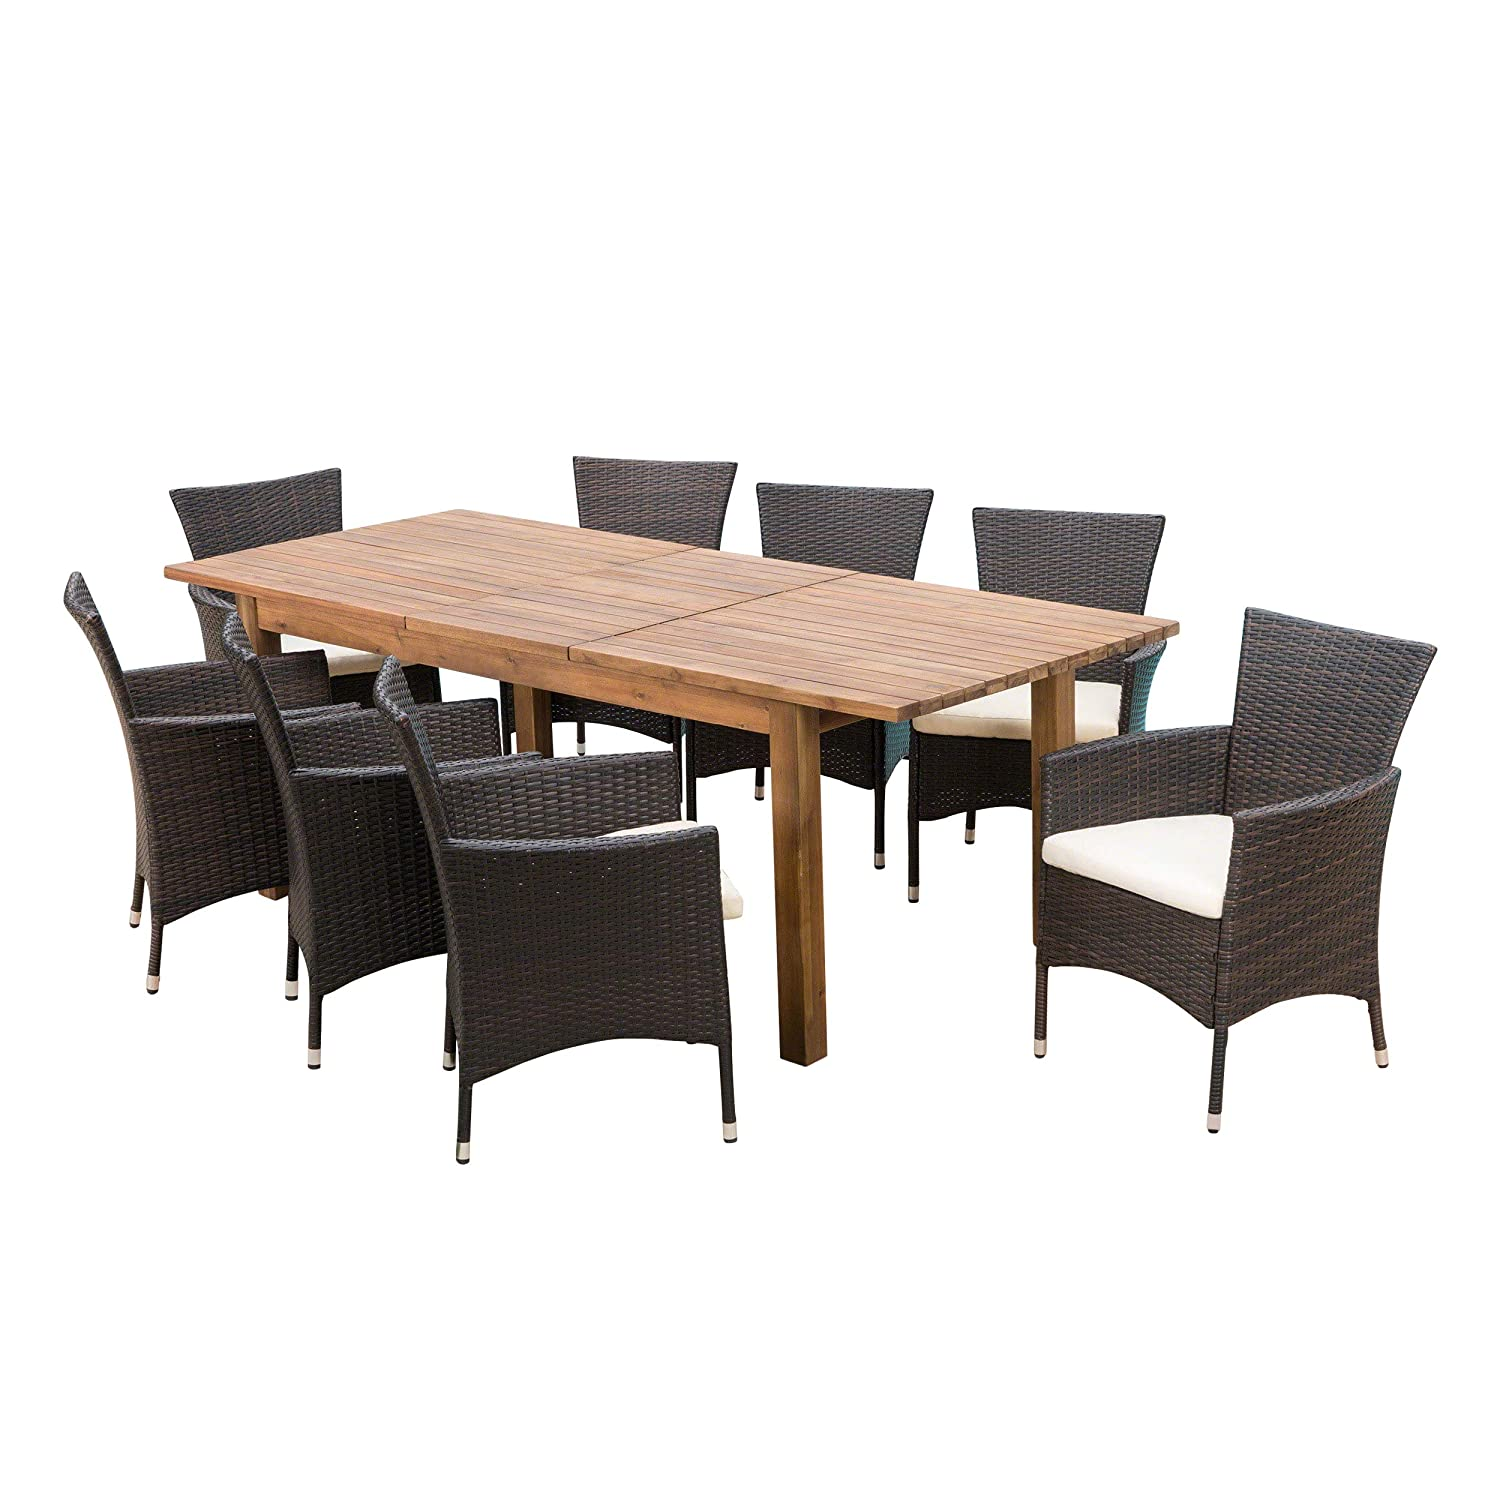 Great deal furniture lorelei outdoor 9 piece multibrown wicker dining set with teak finished acacia wood expandable dining table and beige water resistant